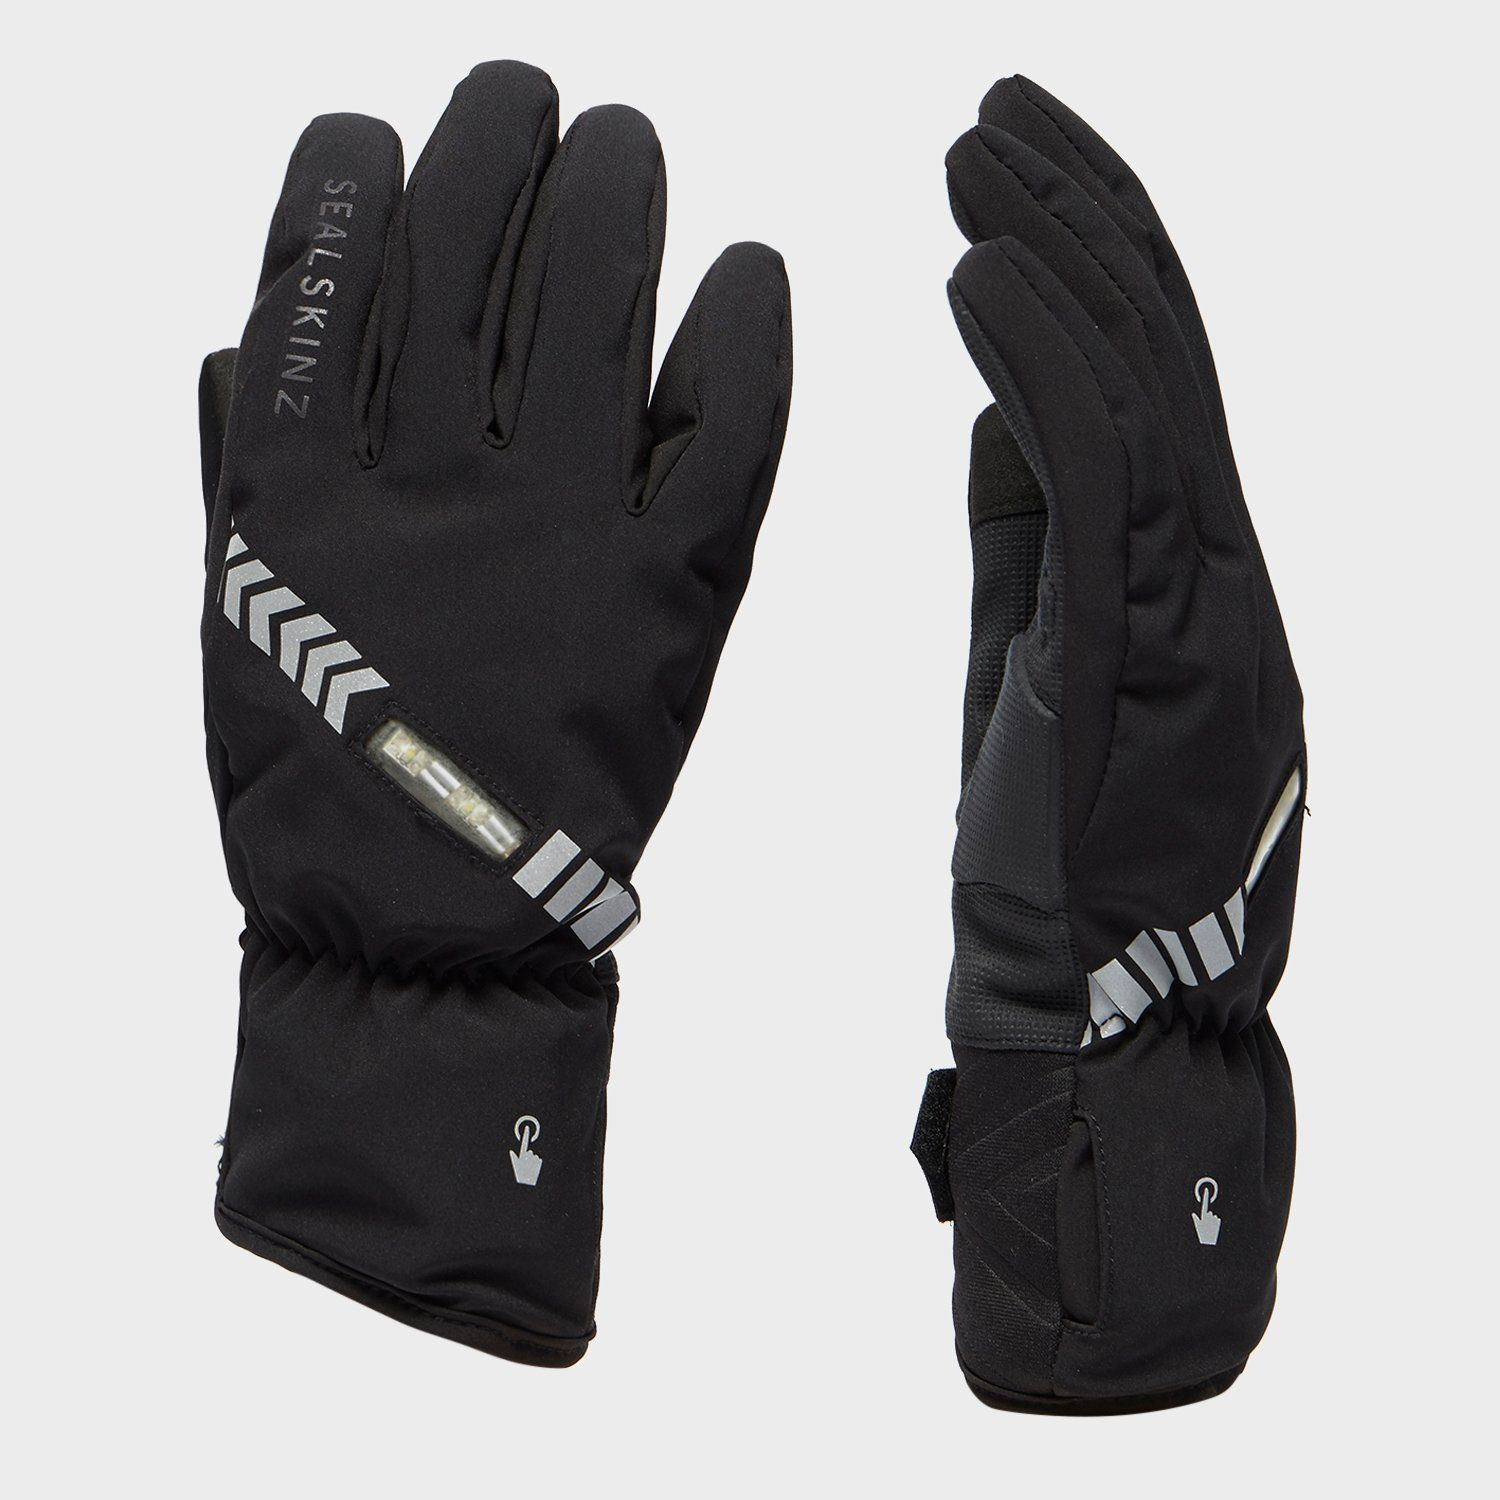 SEALSKINZ Halo All Weather Cycling Gloves